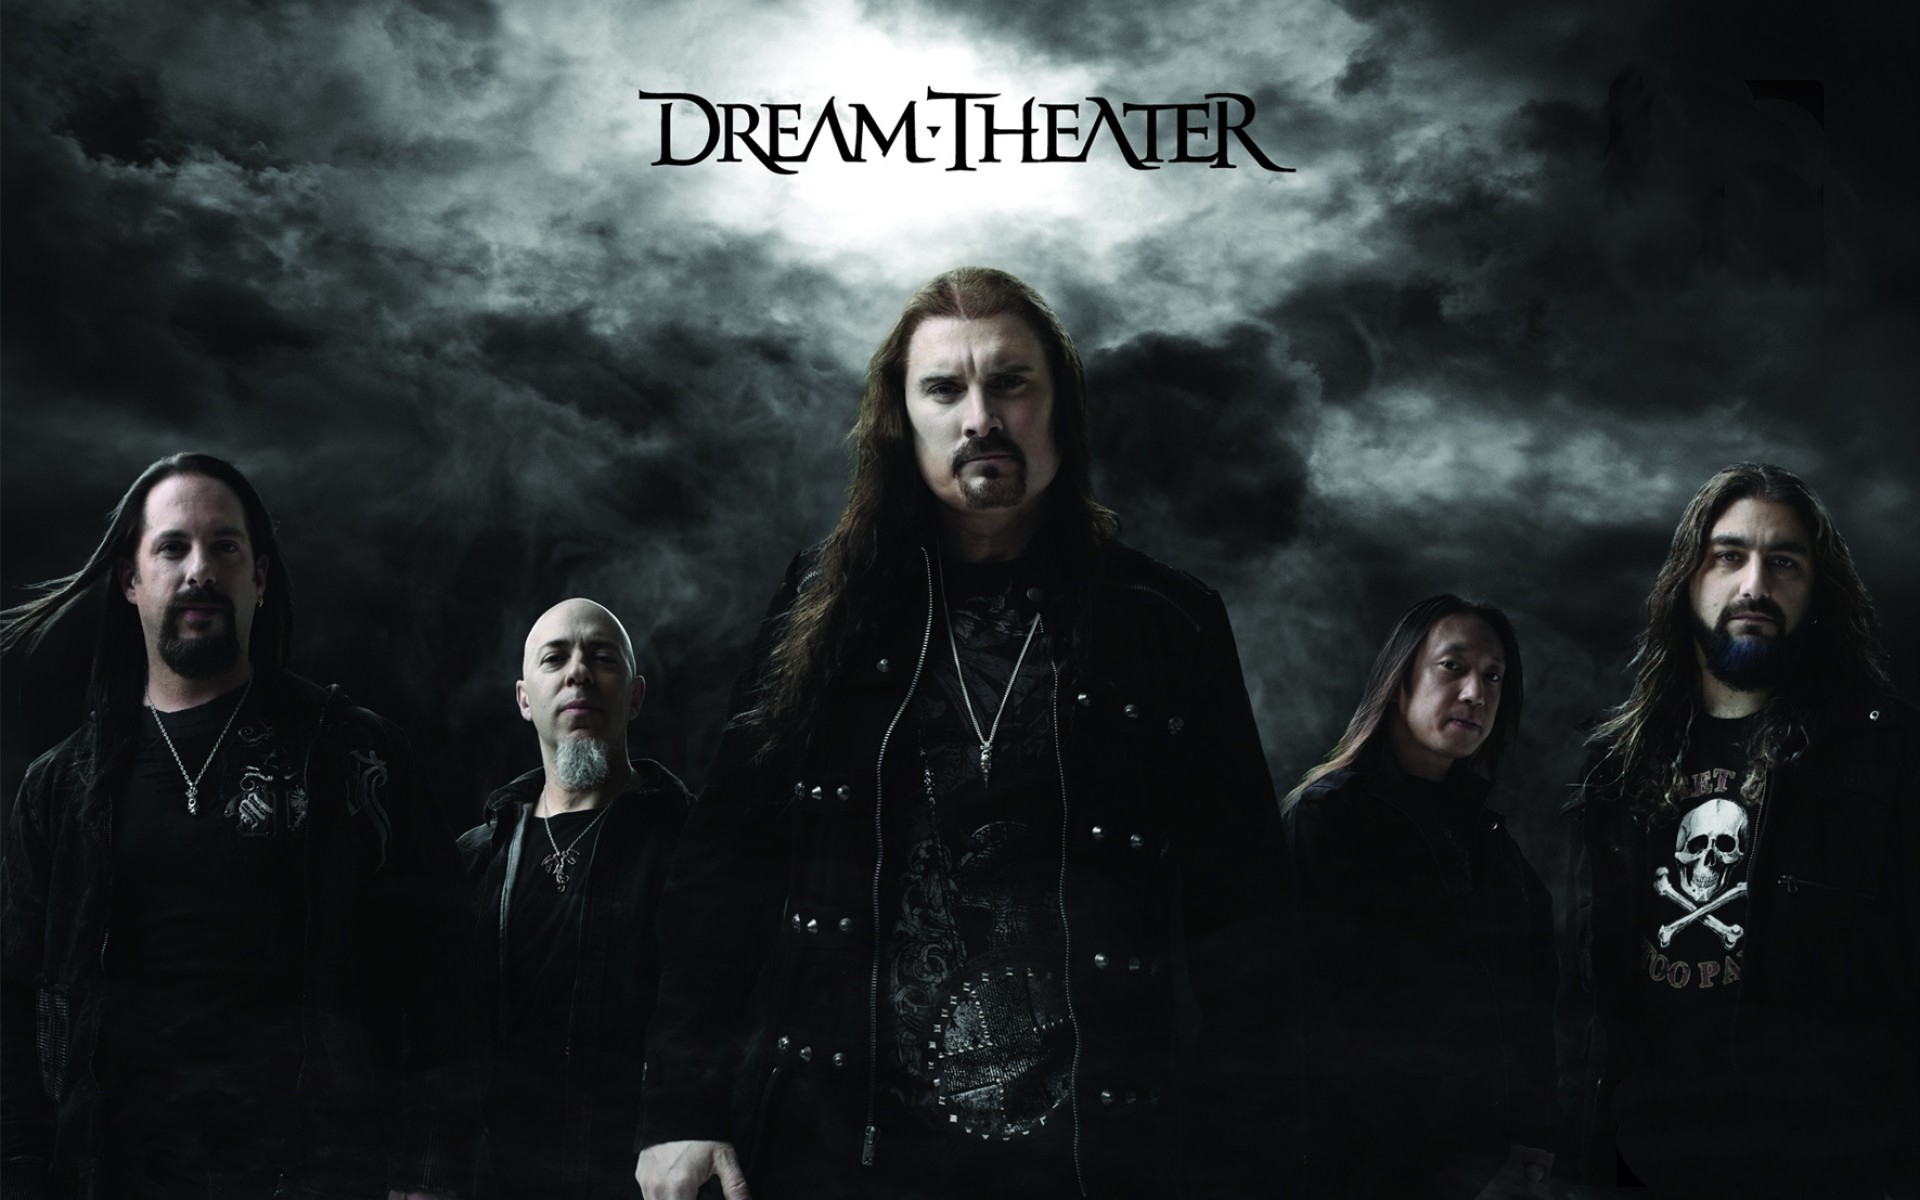 Music dream theater music bands wallpaper 1920x1200 13446 1920x1200